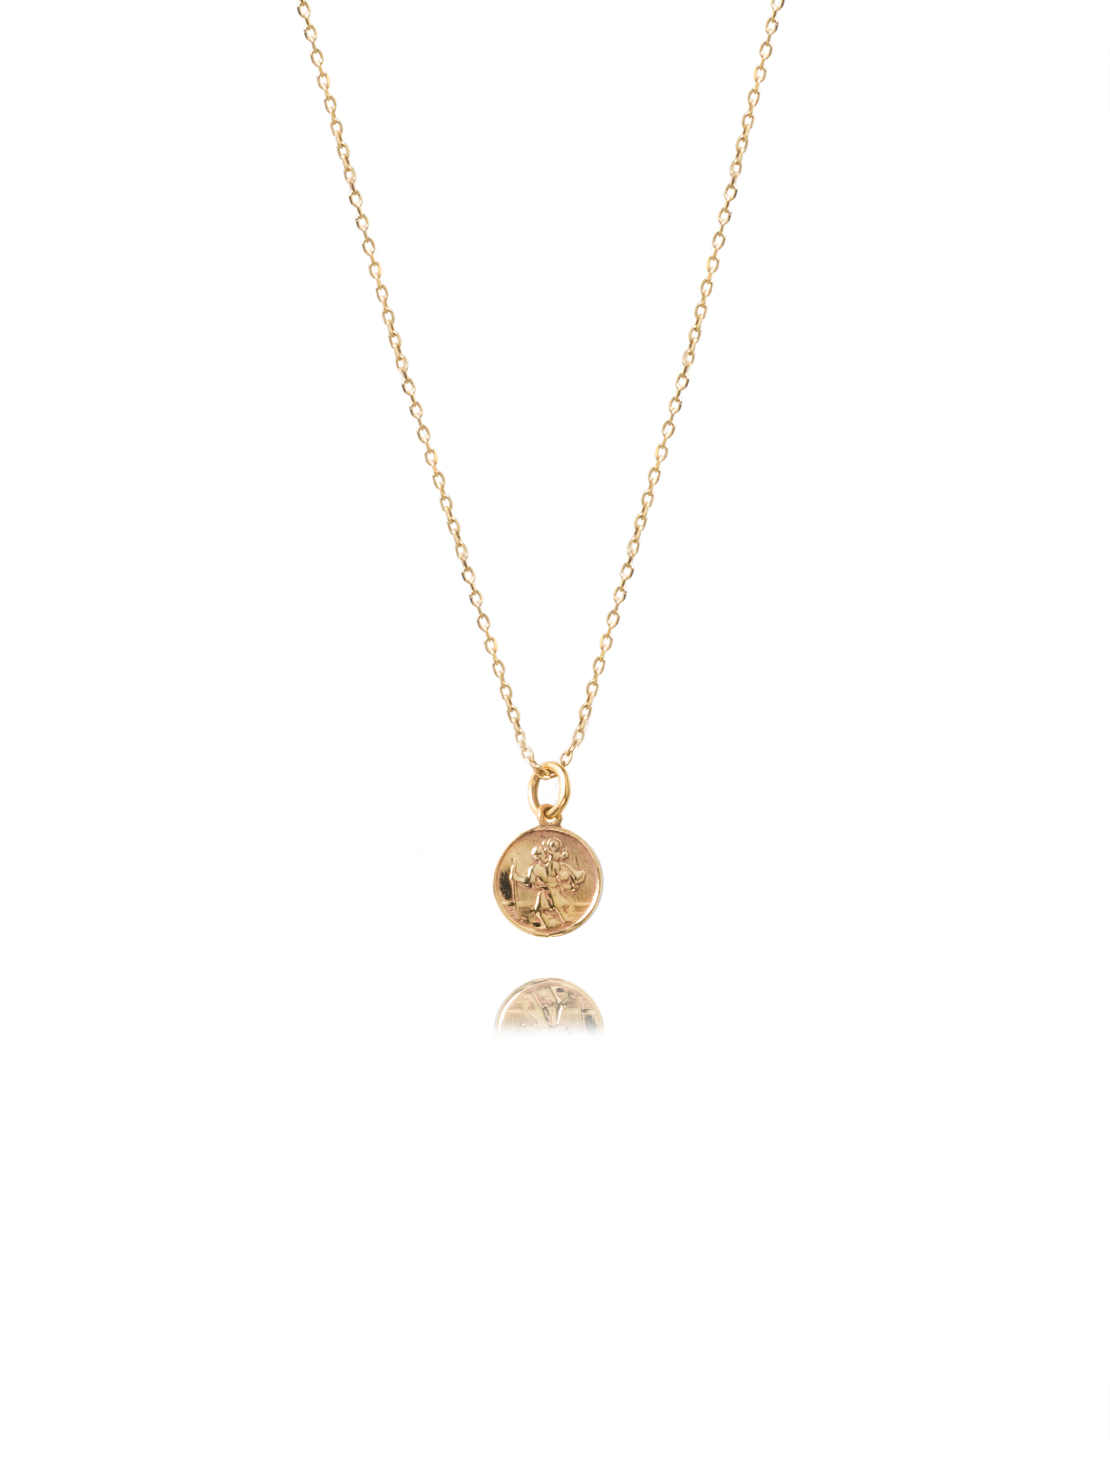 Small gold st christopher necklace tilly sveaas jewellery small gold st christopher necklace aloadofball